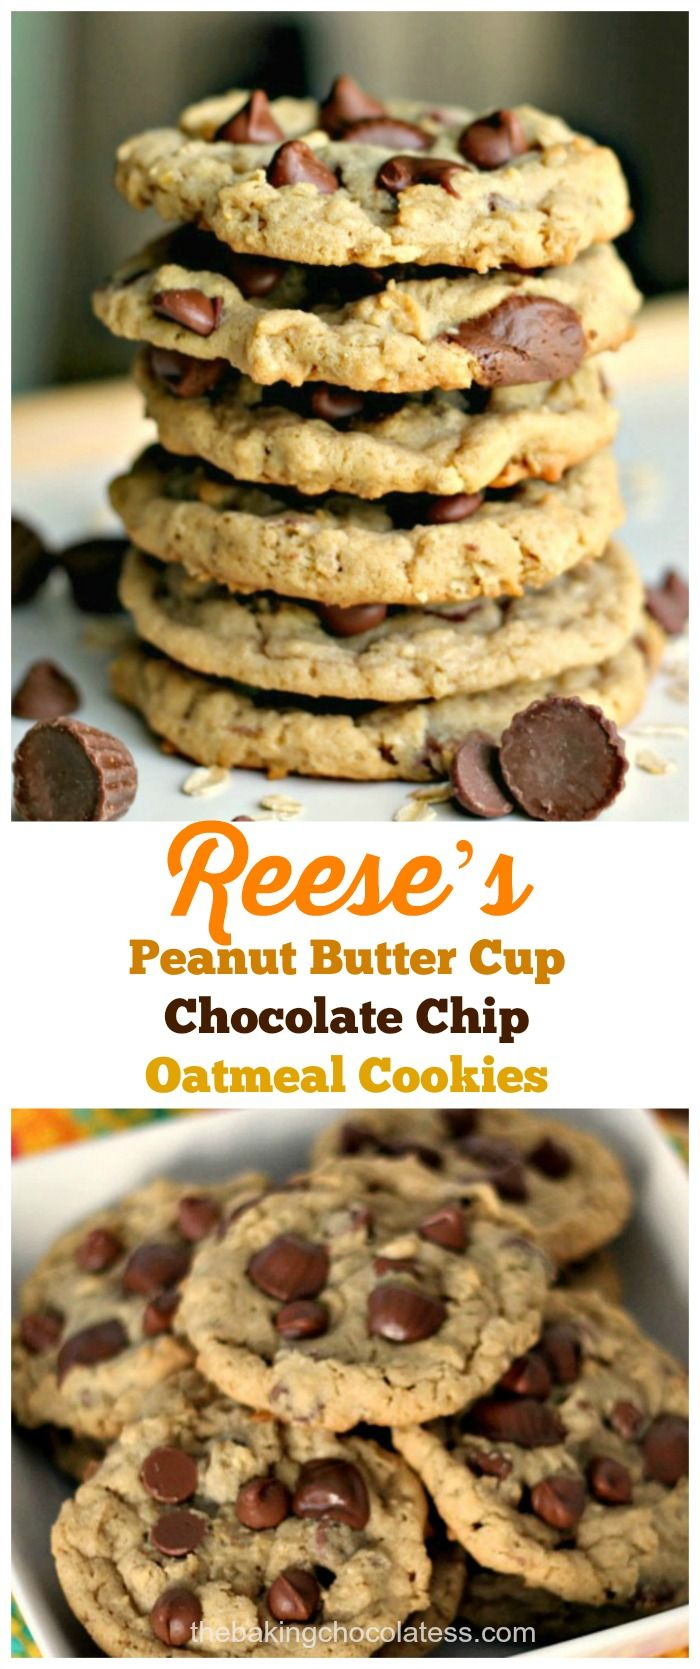 Reese's Peanut Butter Cup Chocolate Chip Oatmeal Cookies via @https://www.pinterest.com/BaknChocolaTess/